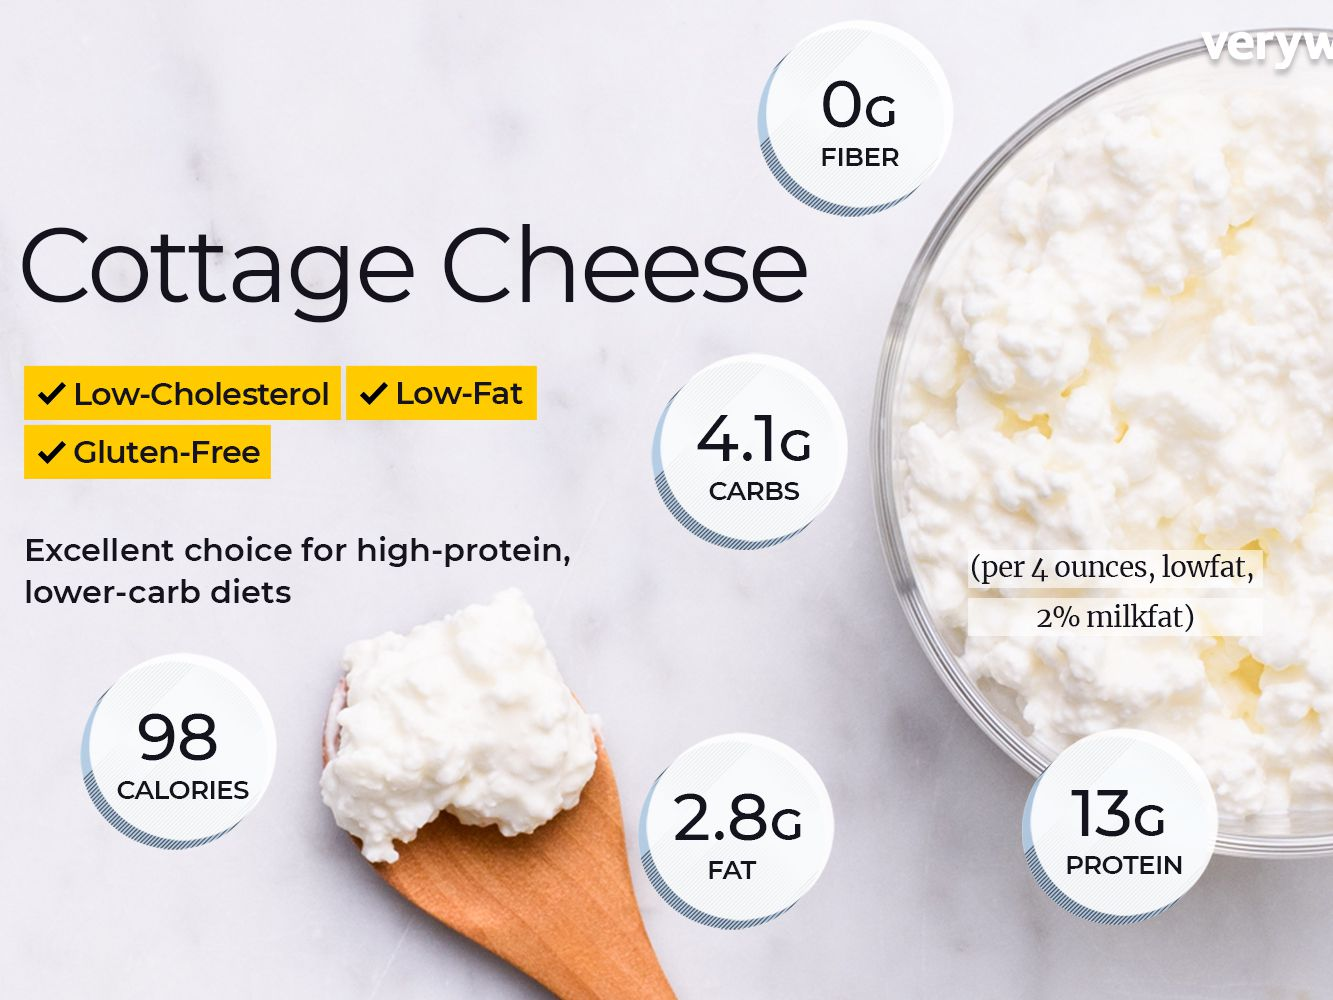 Astonishing Cottage Cheese Nutrition Facts Calories Carbs And Health Download Free Architecture Designs Rallybritishbridgeorg